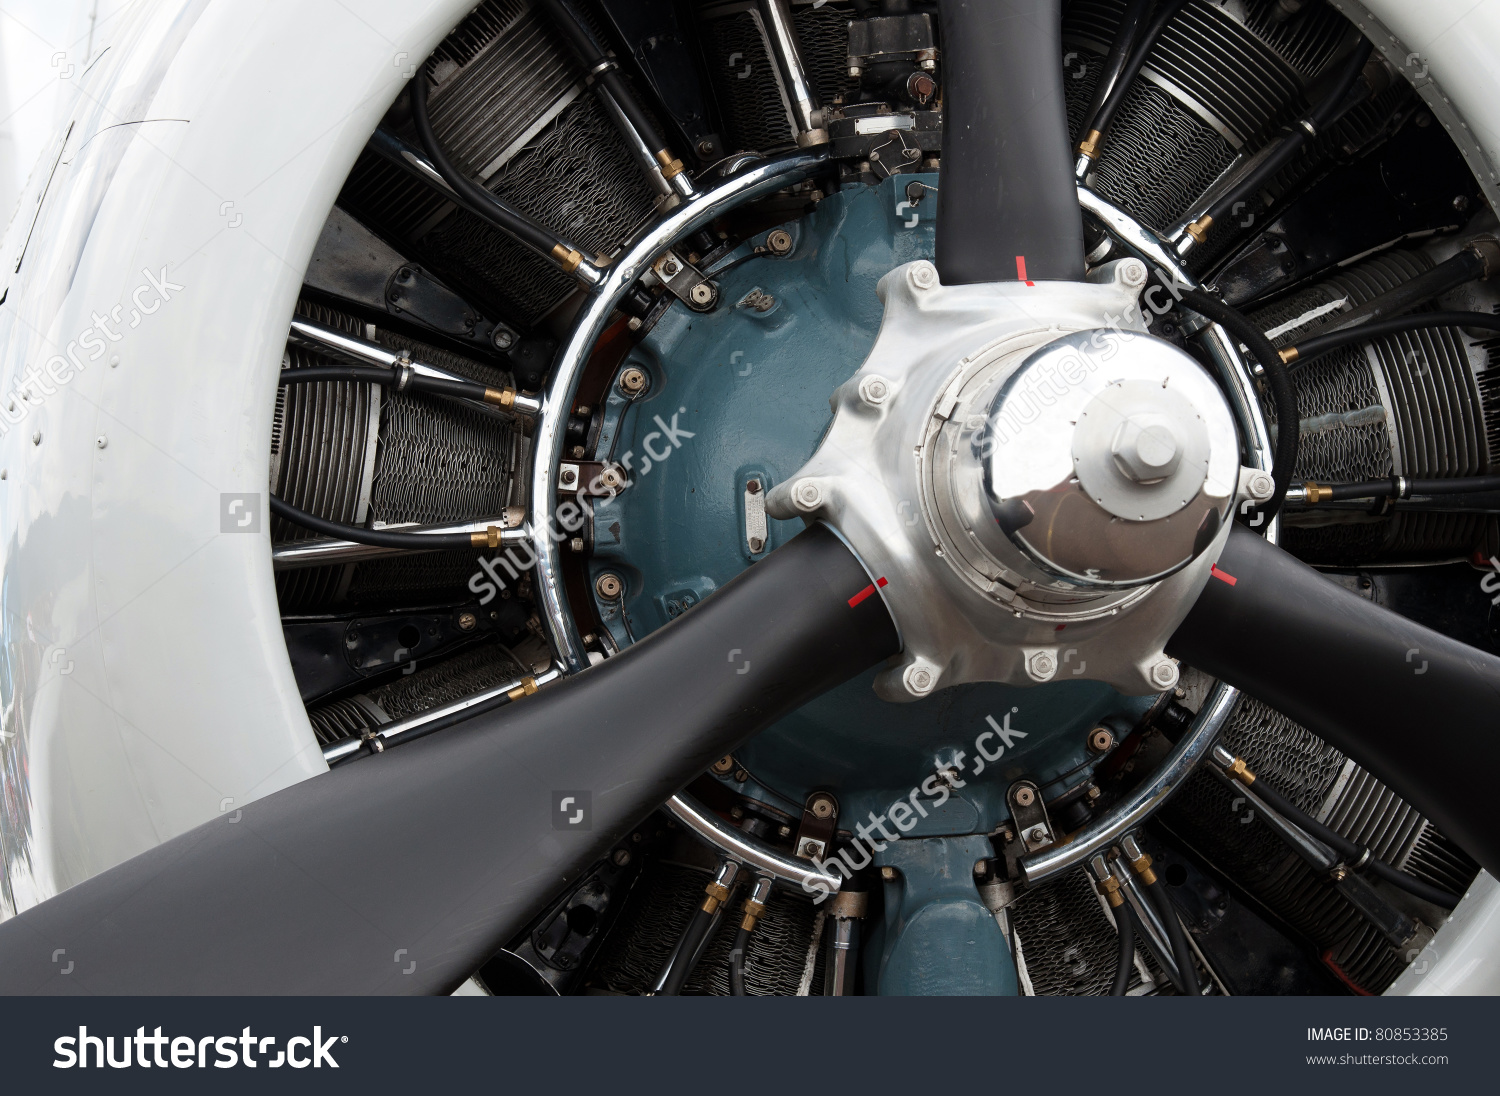 Detail Of 9 Cylinder Radial Engine Of Old Airplane Stock Photo.